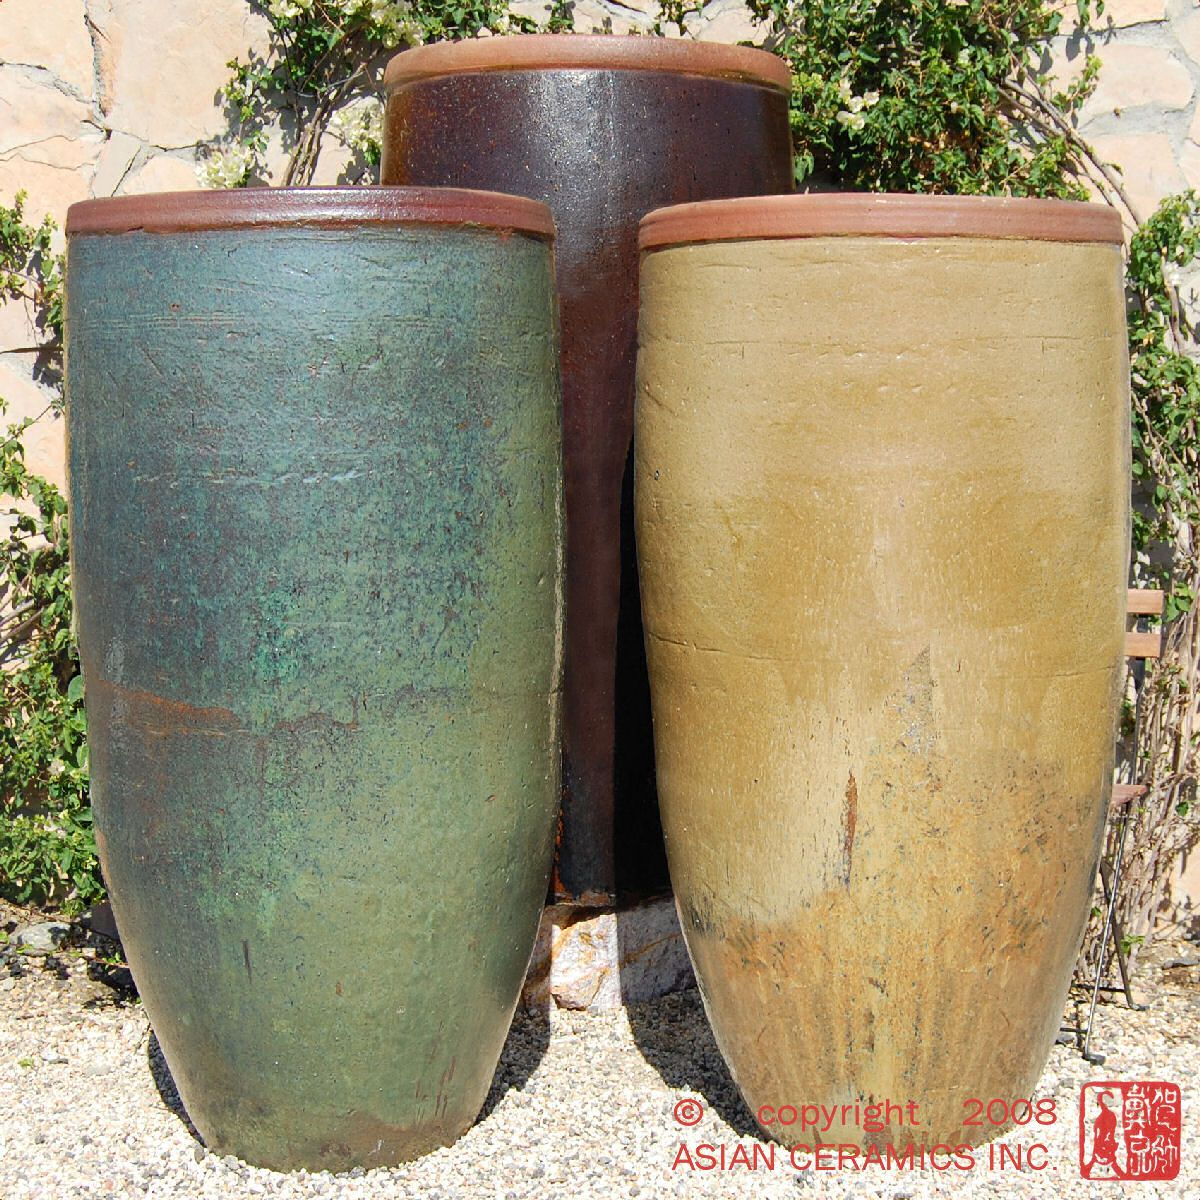 tall planters   tall rustic jar large tapered planter bronze large tapered  planter. tall planters   tall rustic jar large tapered planter bronze large